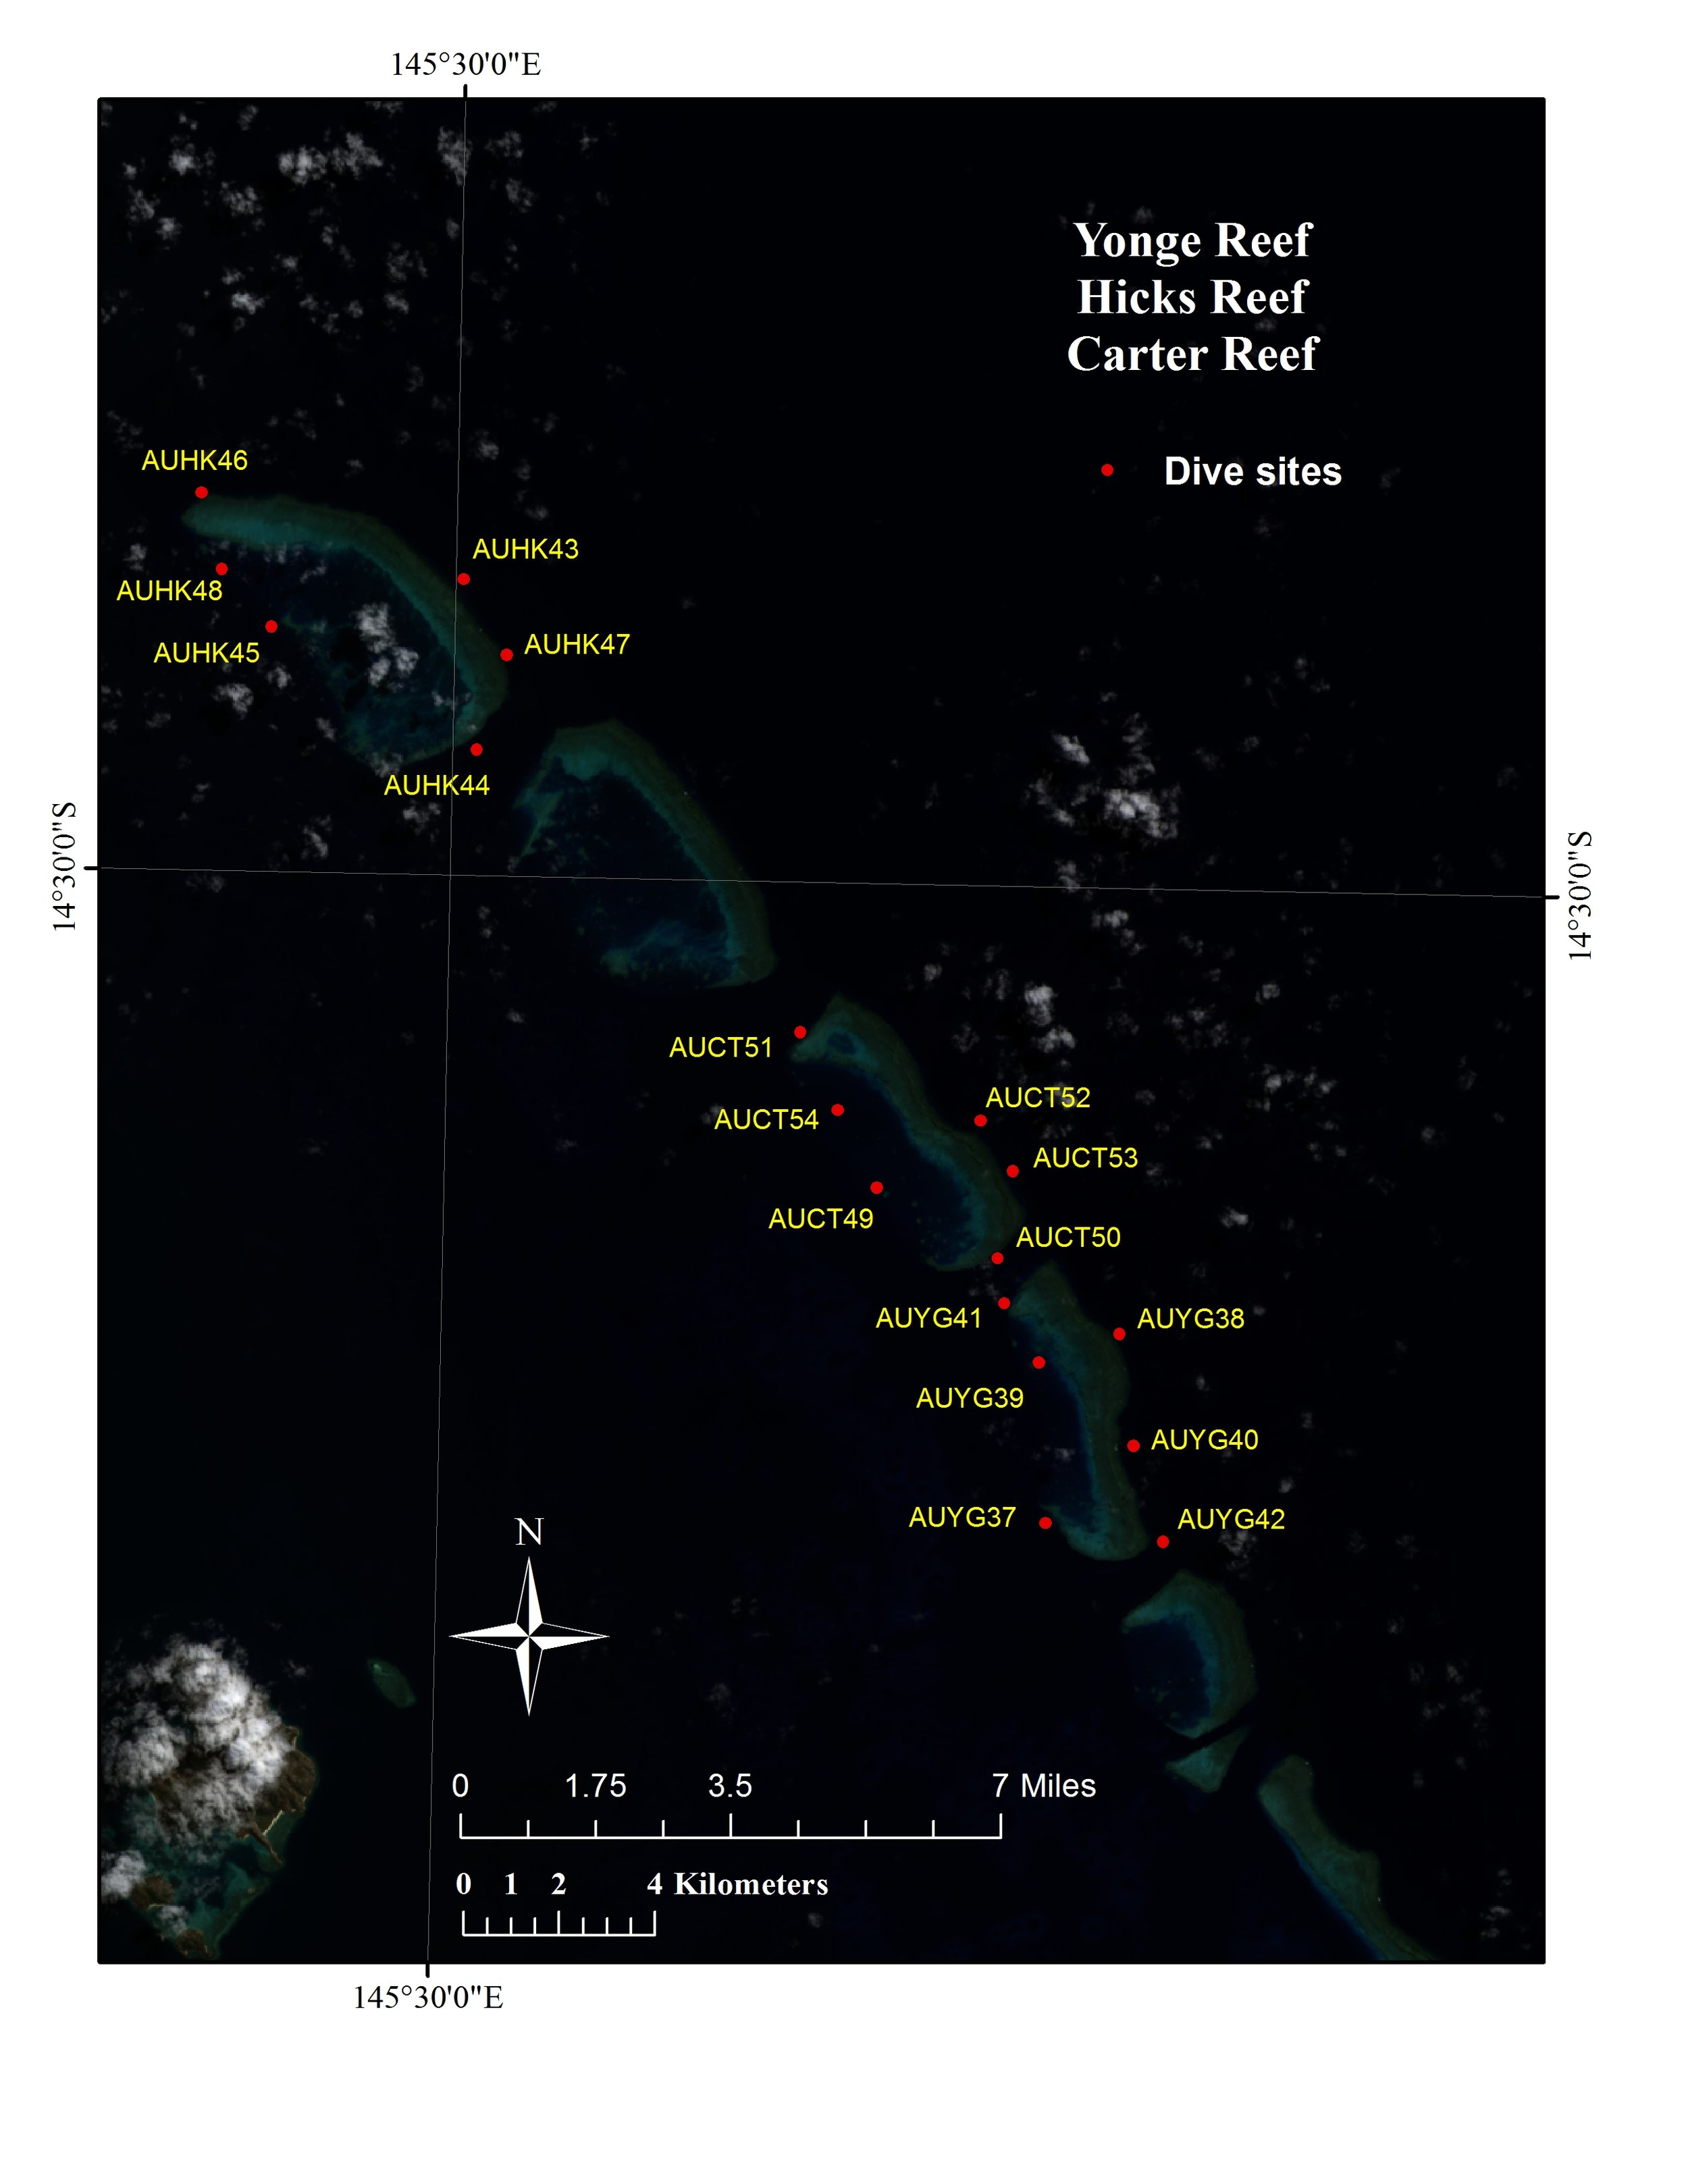 High-resolution habitat maps will be posted on the Living Oceans Foundation's world reef map  website  in late 2019.